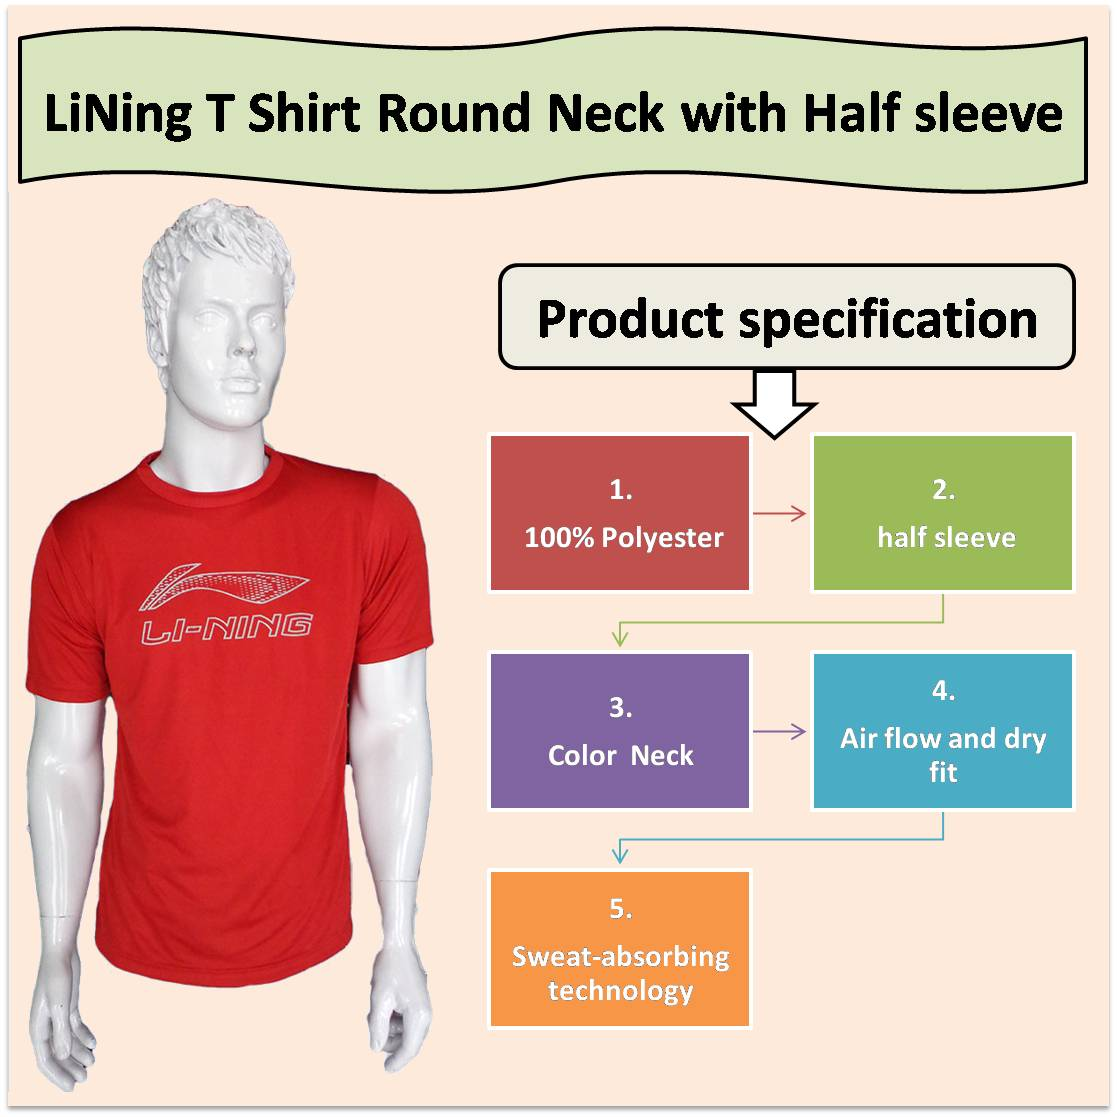 LiNing T Shirt Round Neck with Half sleeve Red